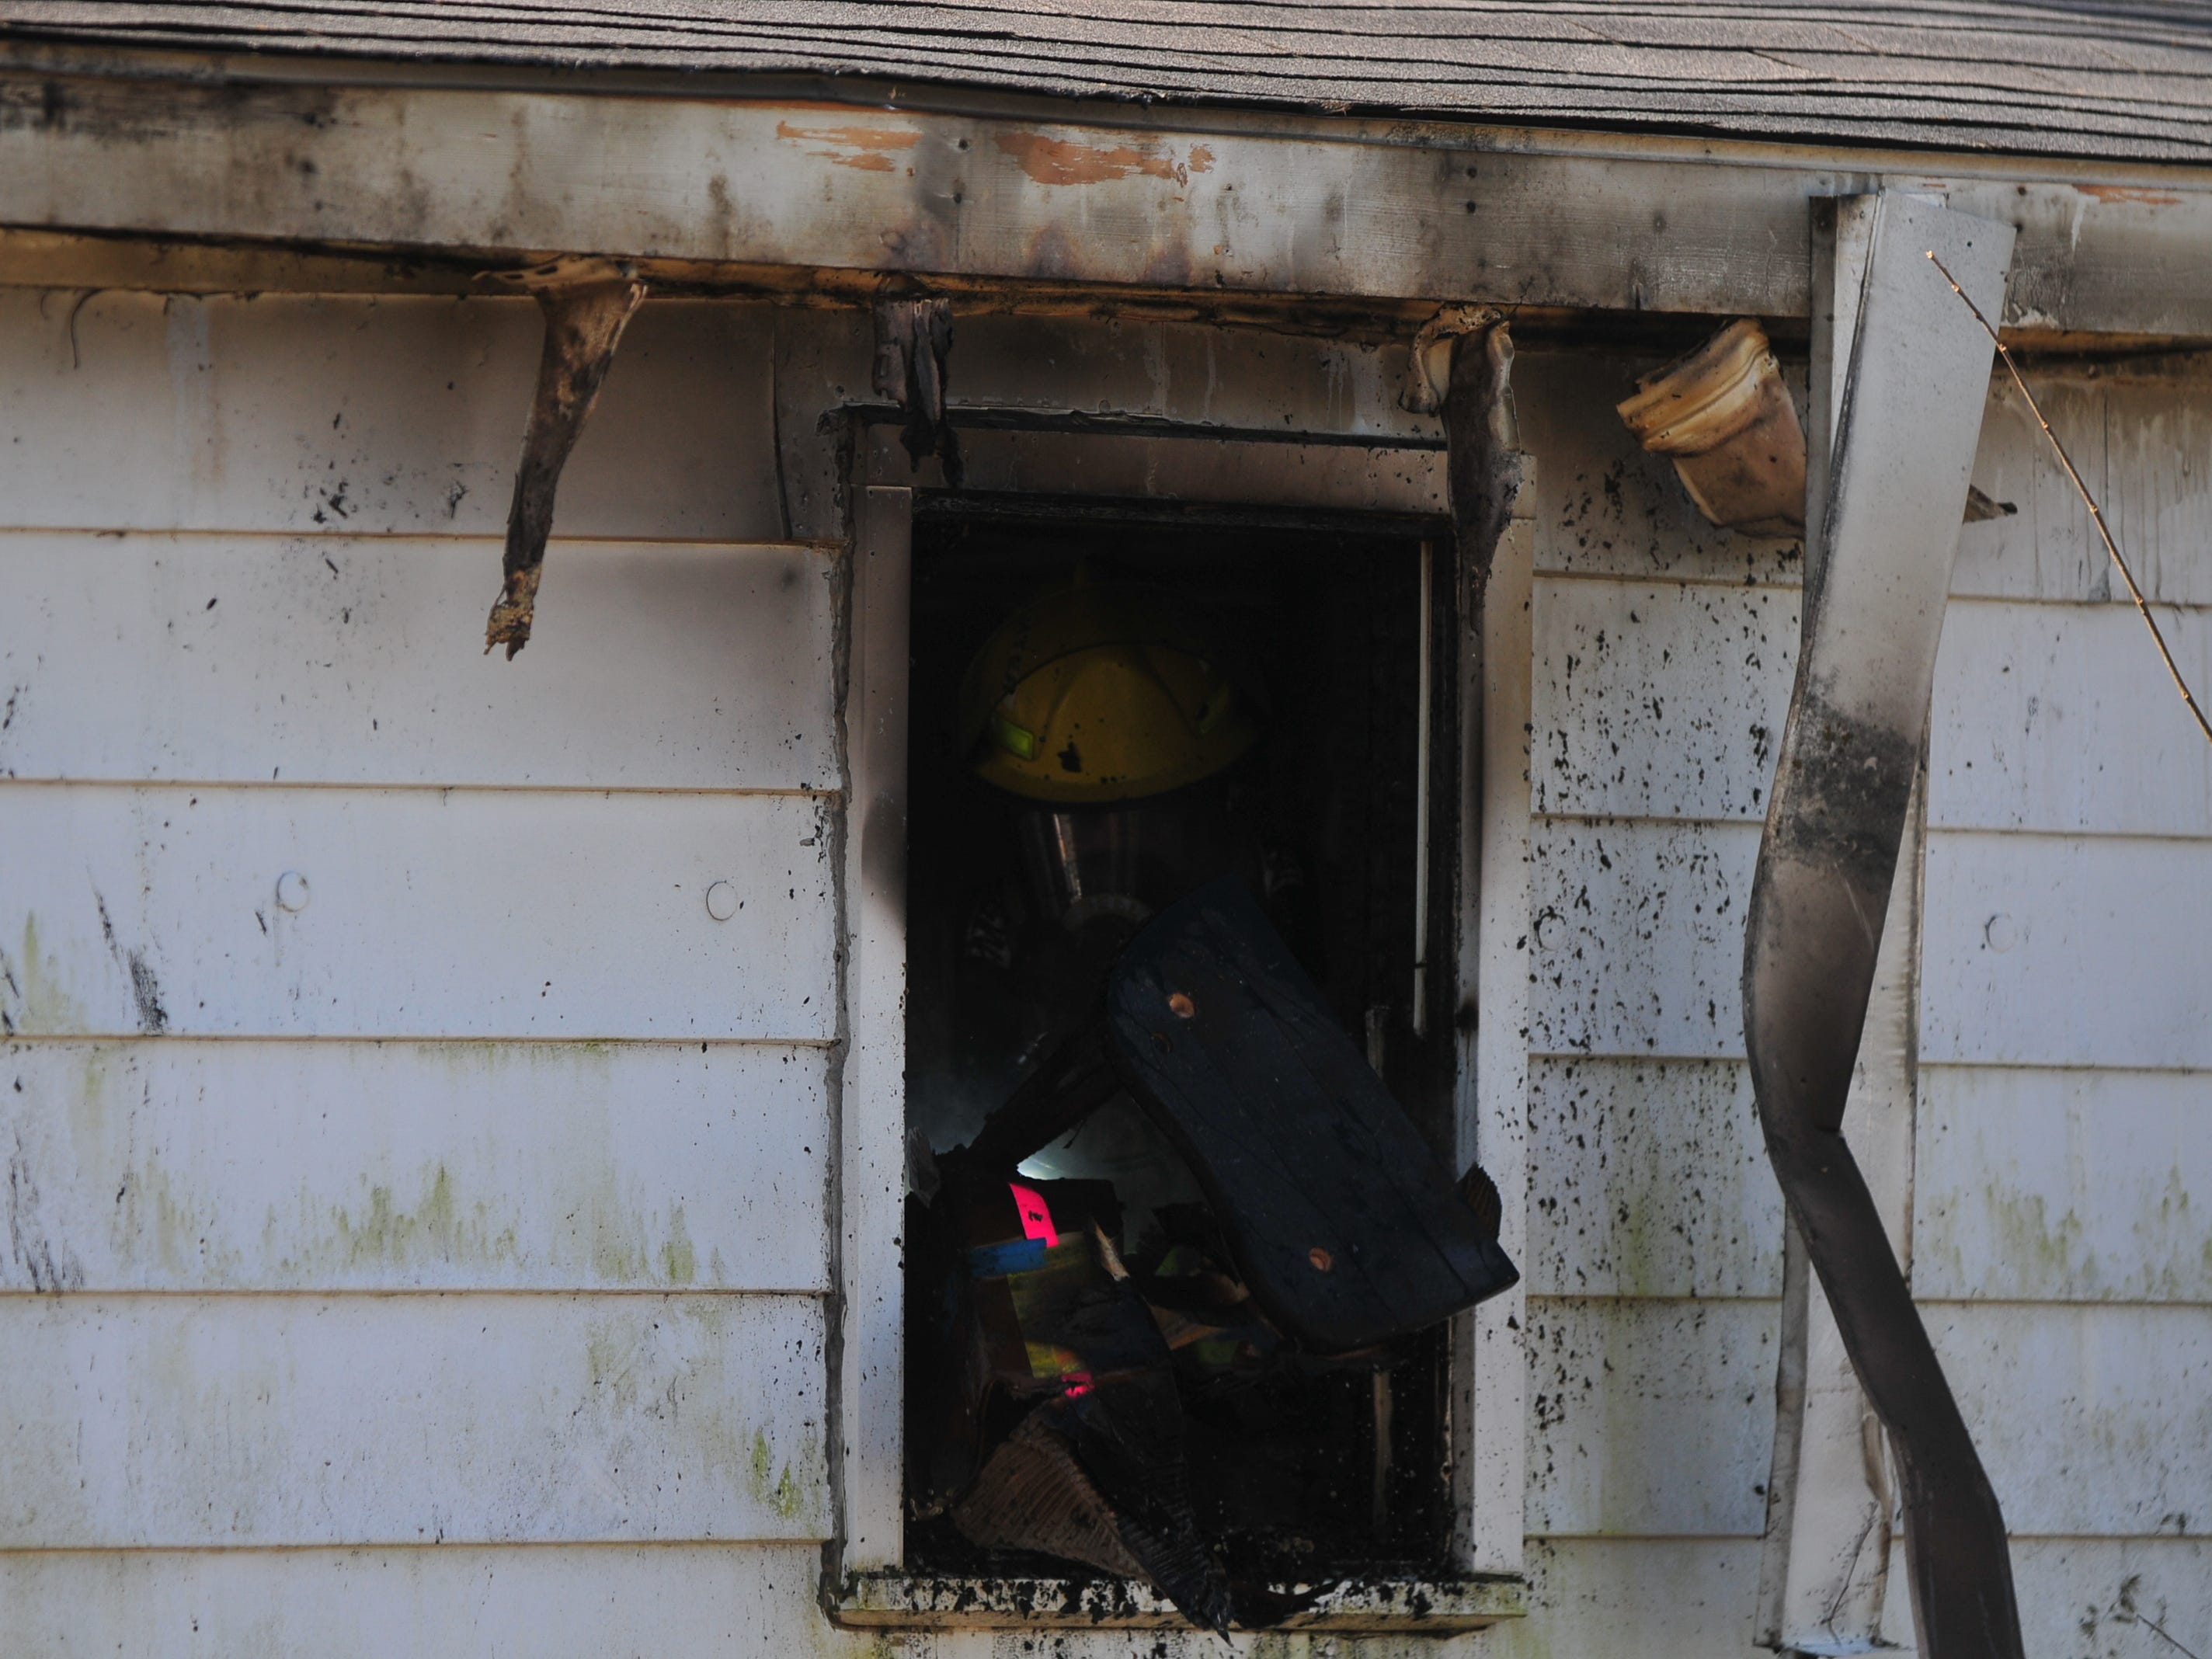 Burned material is tossed out a window Wednesday morning at a house in the 2100 block of South 11th Street.